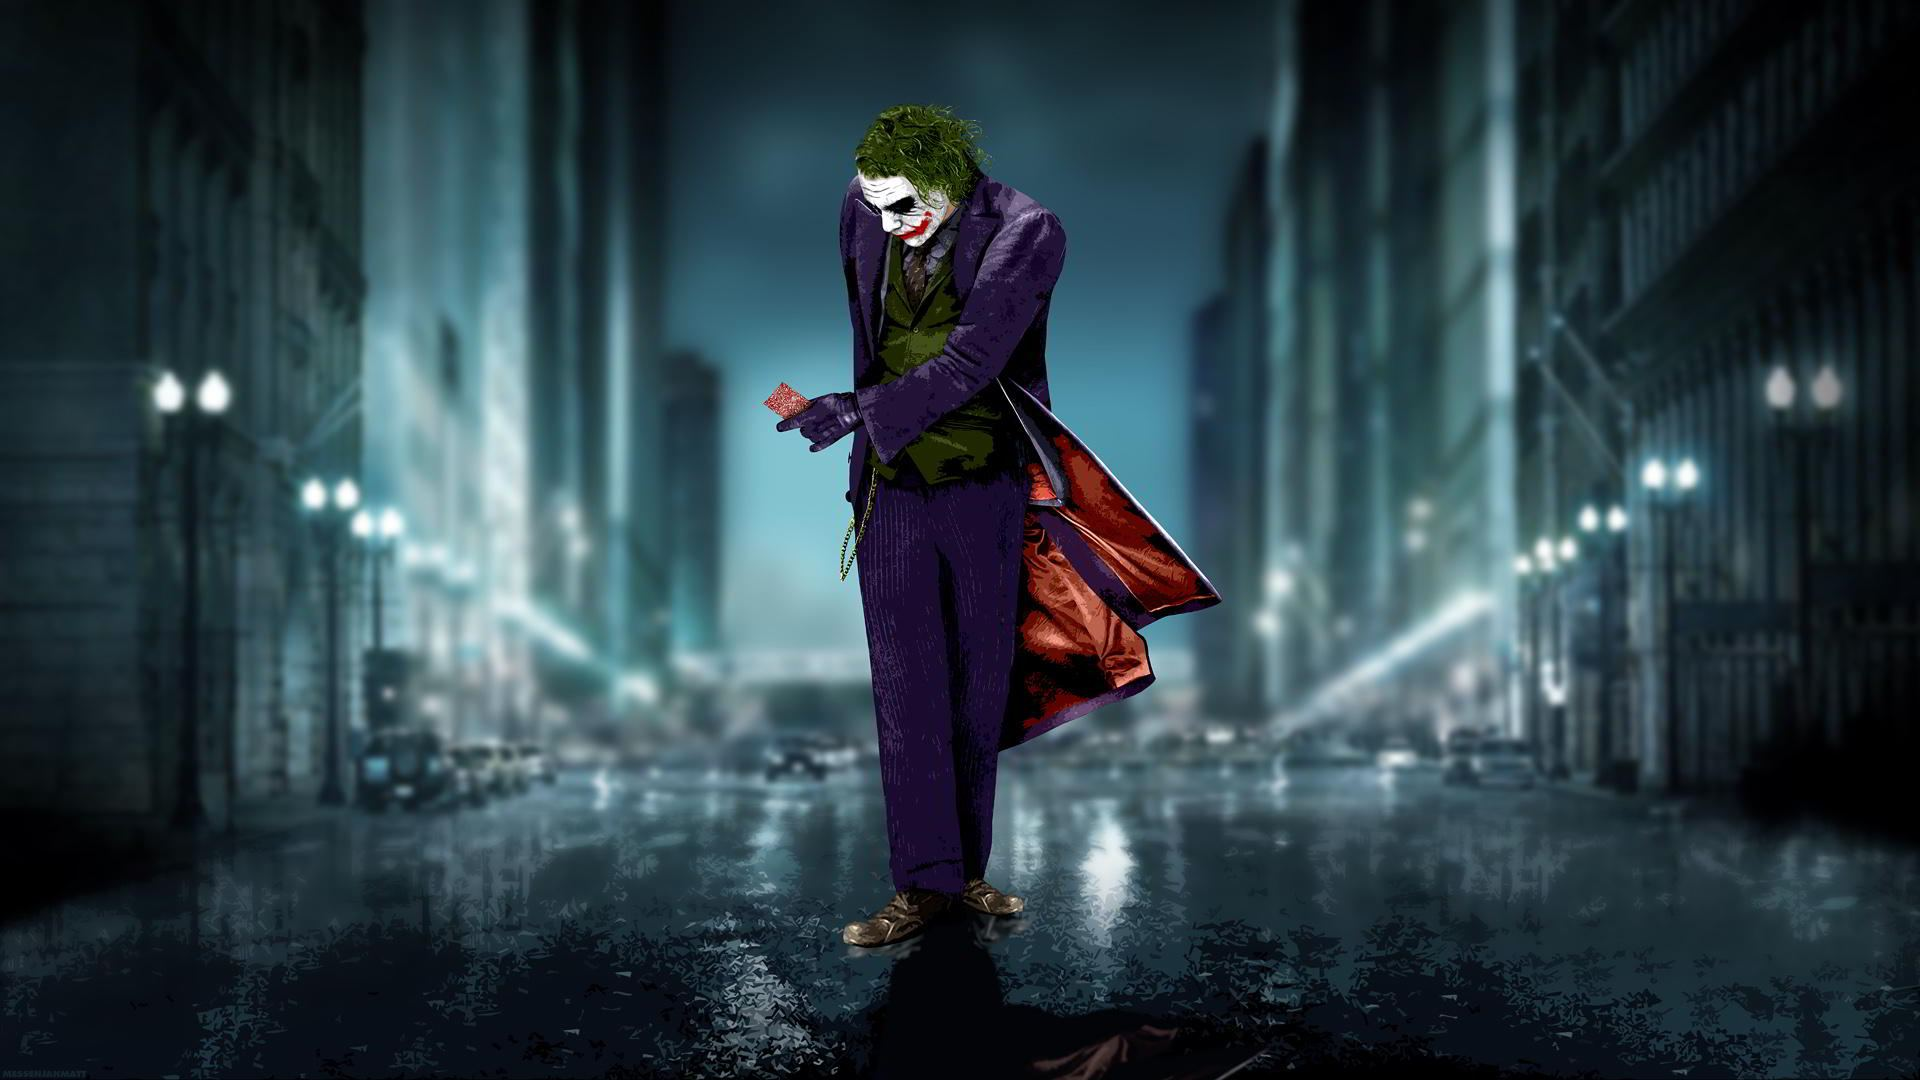 joker-why-so-serious-wallpaper